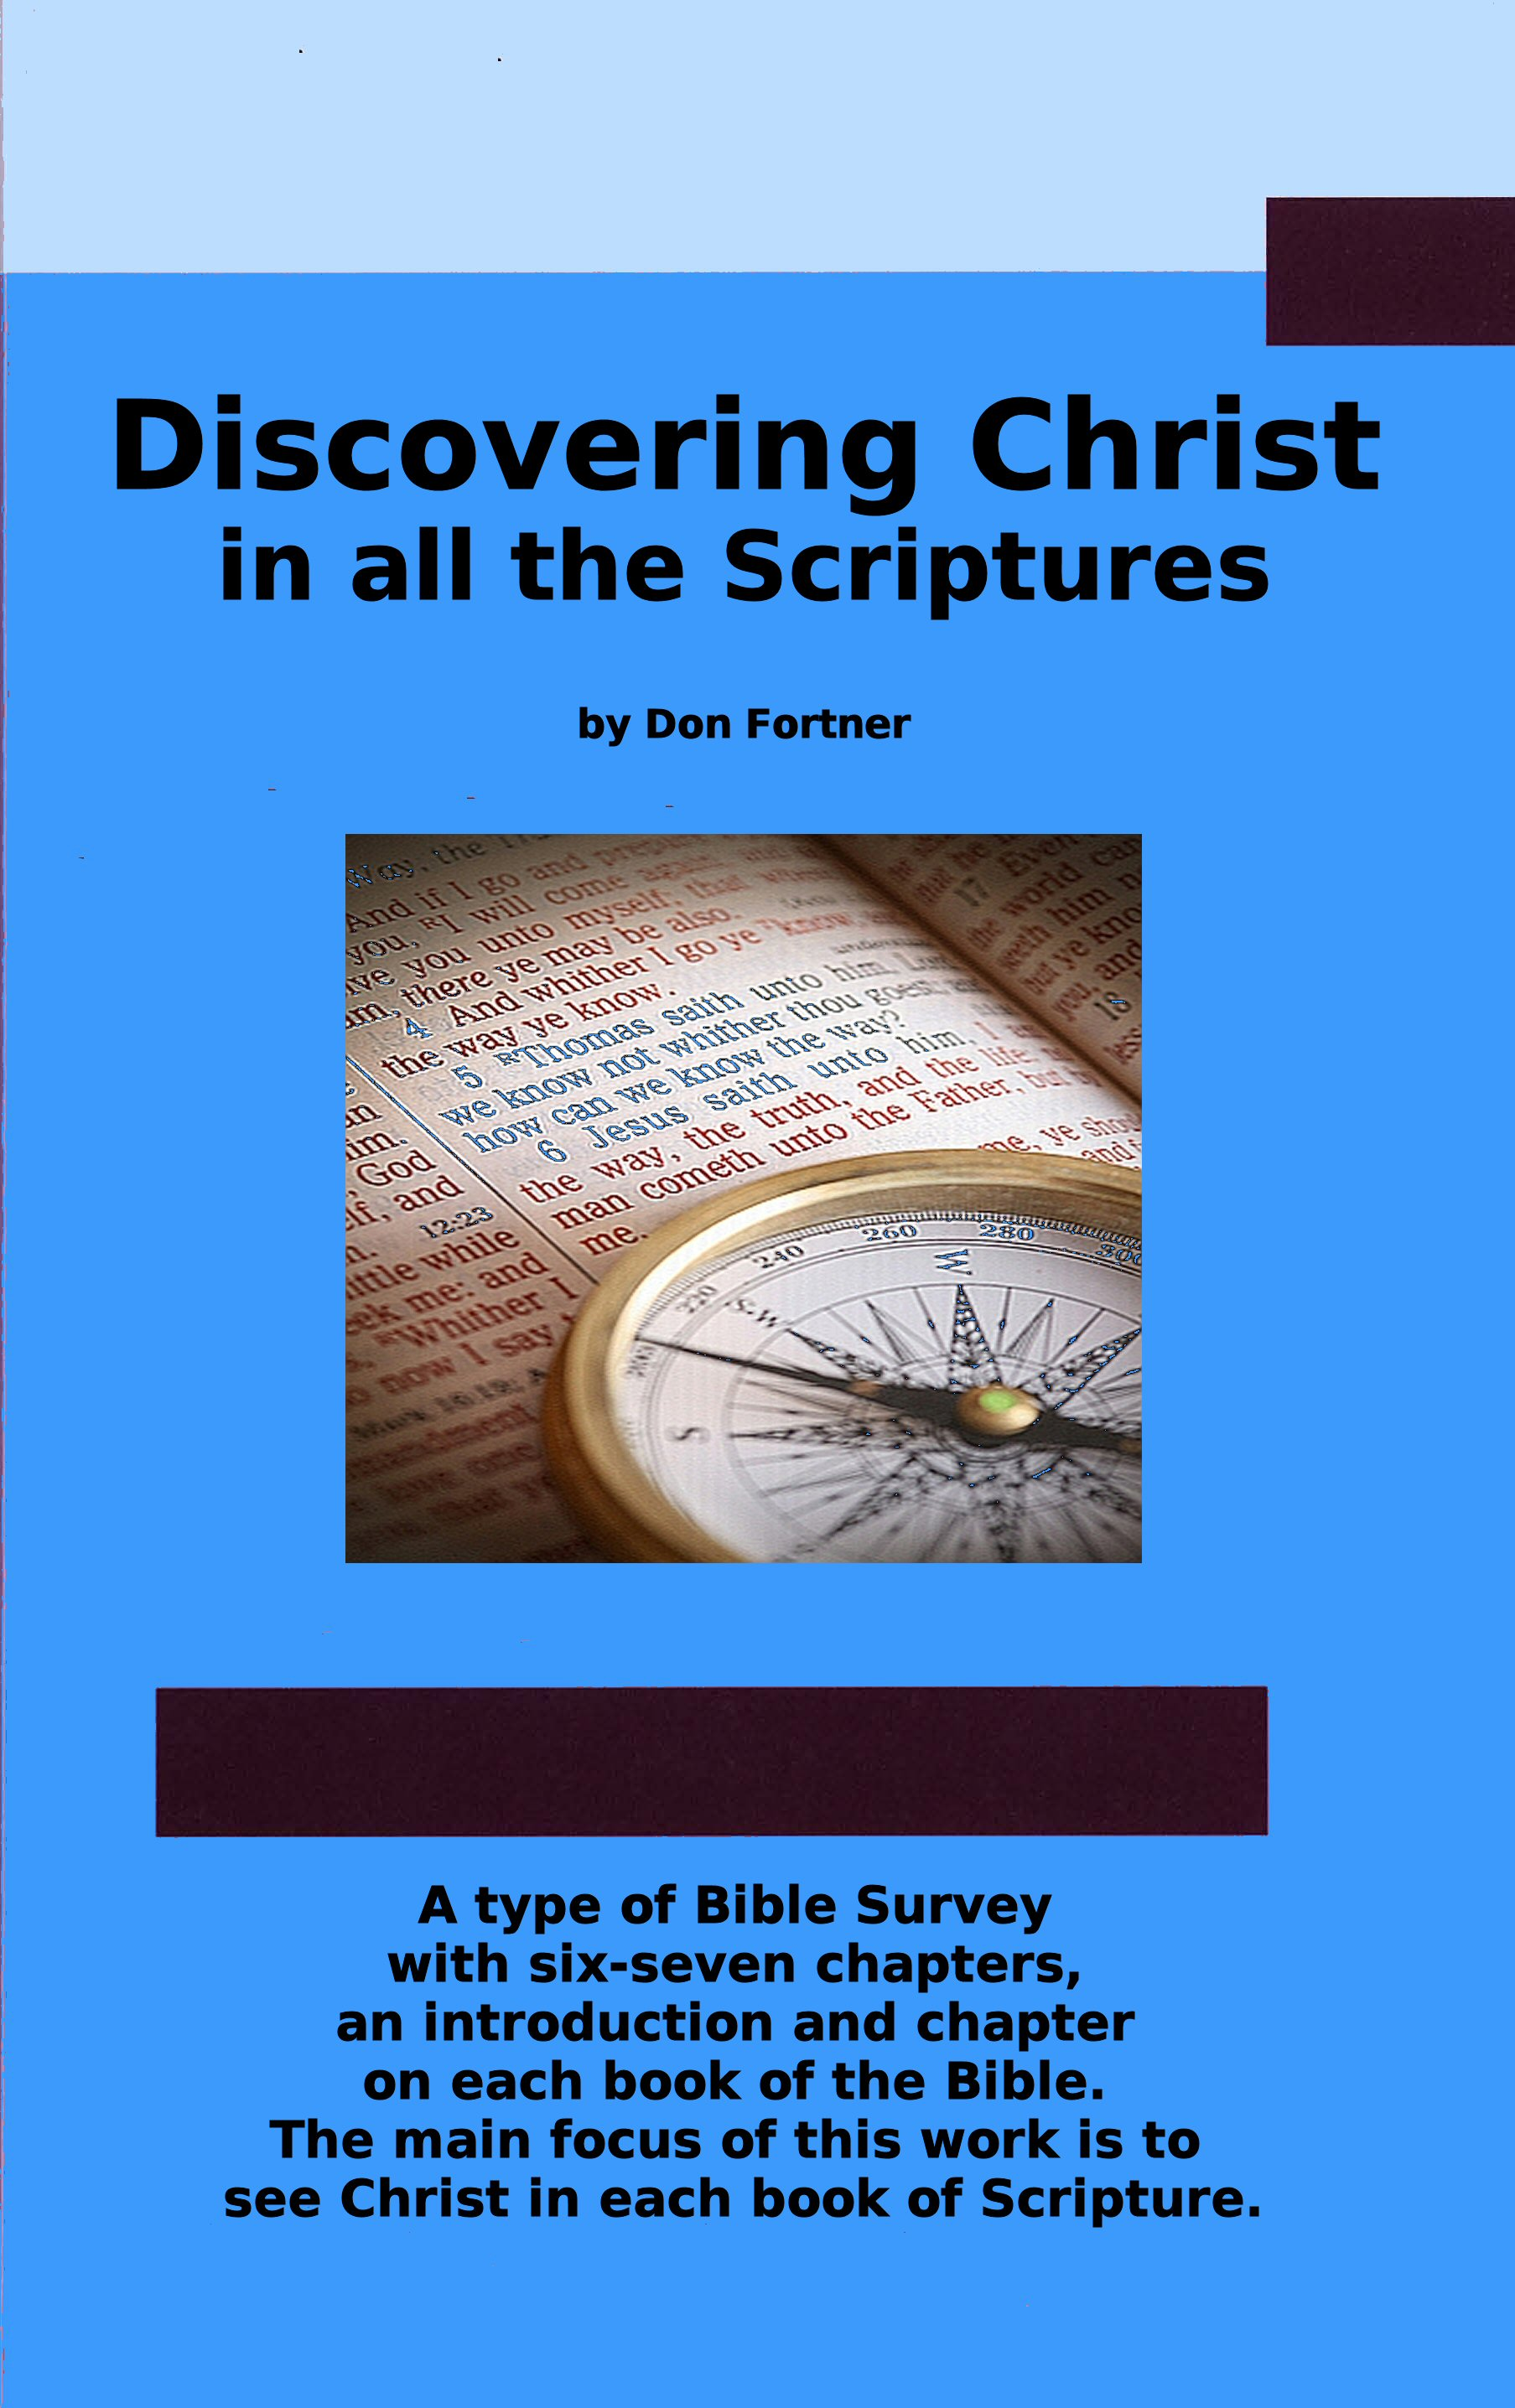 Discovering christ in all the scriptures free ebook download by discovering christ in all the scriptures free ebook download by don fortner fandeluxe Gallery